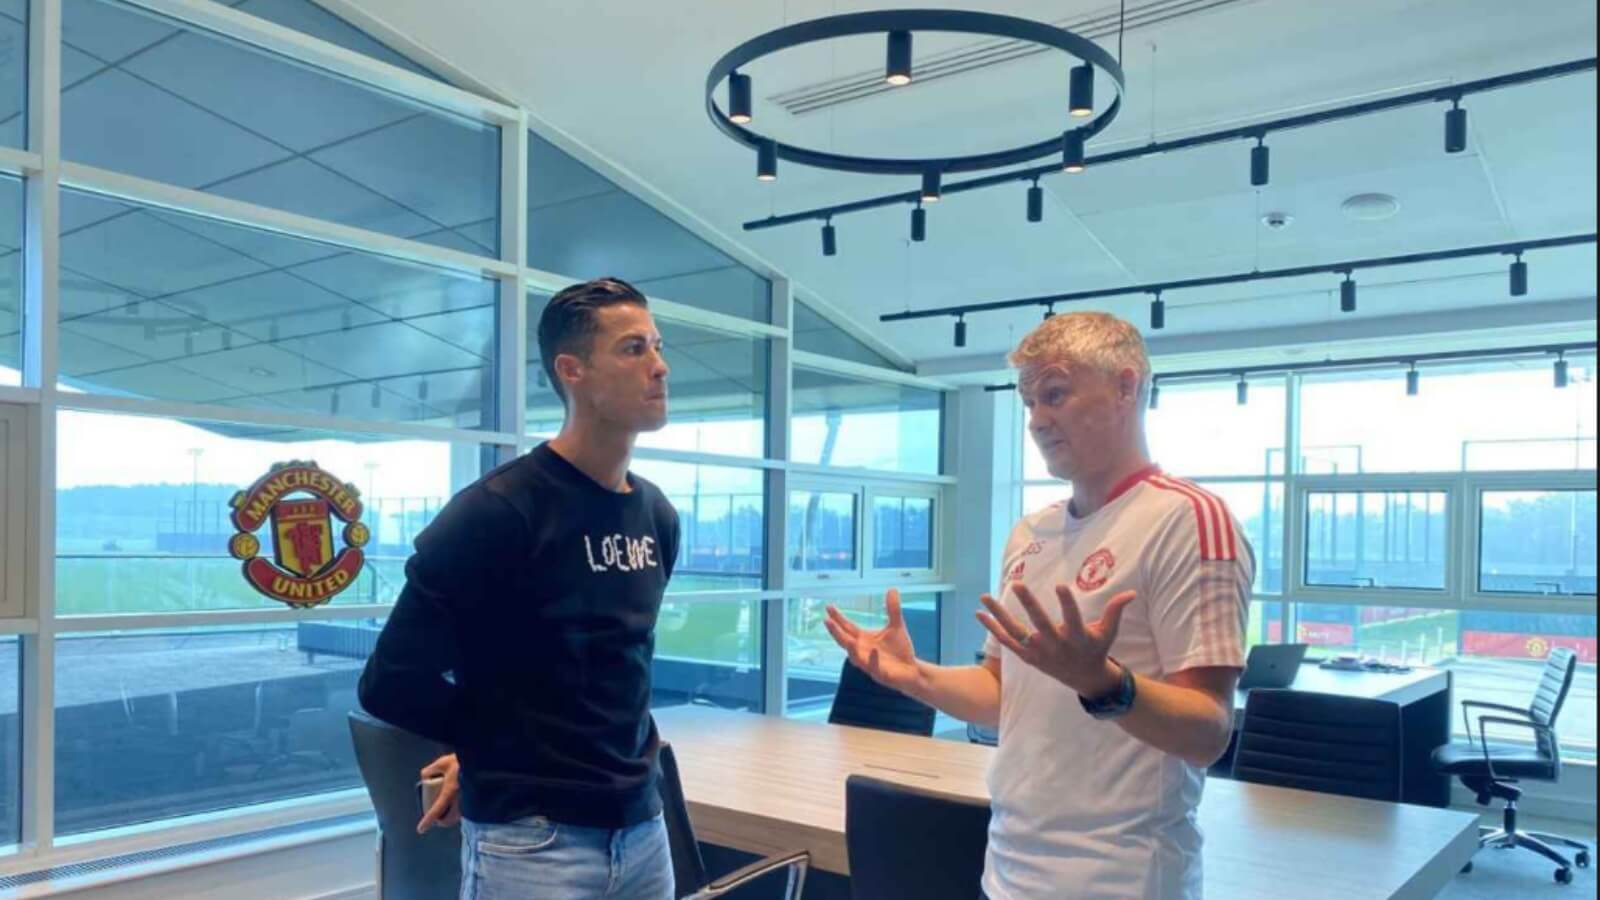 Cristiano Ronaldo trained first time with Manchester United at Carrington